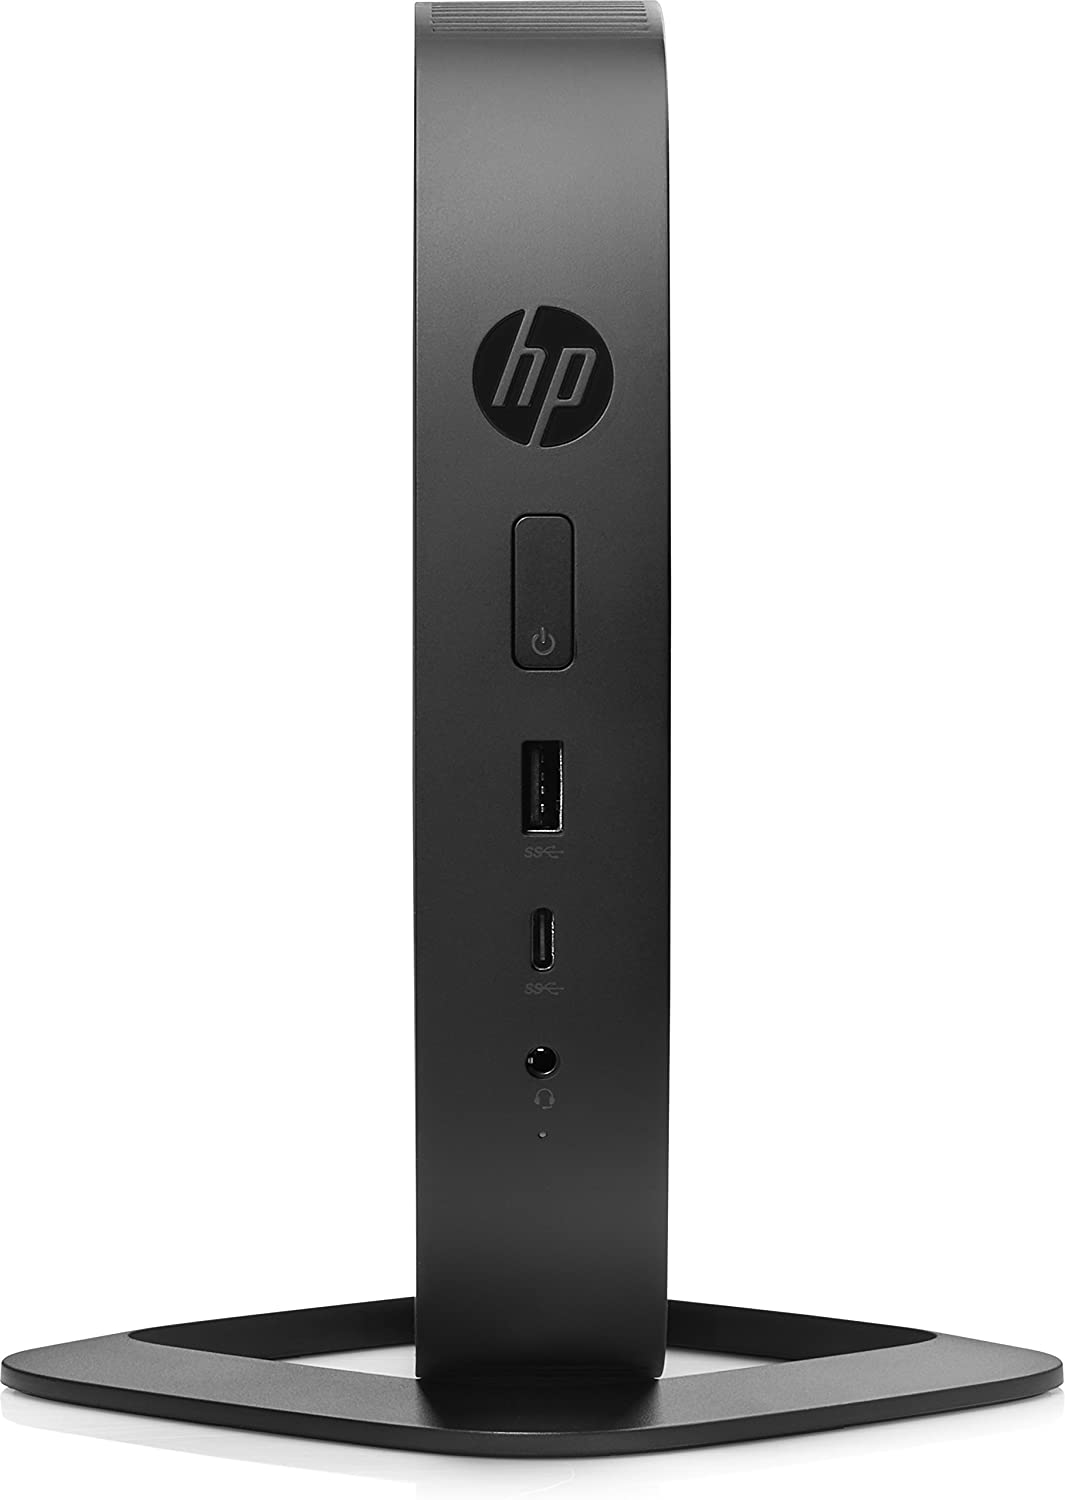 HP 2DH77AT#ABA T530, Thin Client, Tower, 4 GB Ram, 8 GB Flash, AMD Radeon R2, Black